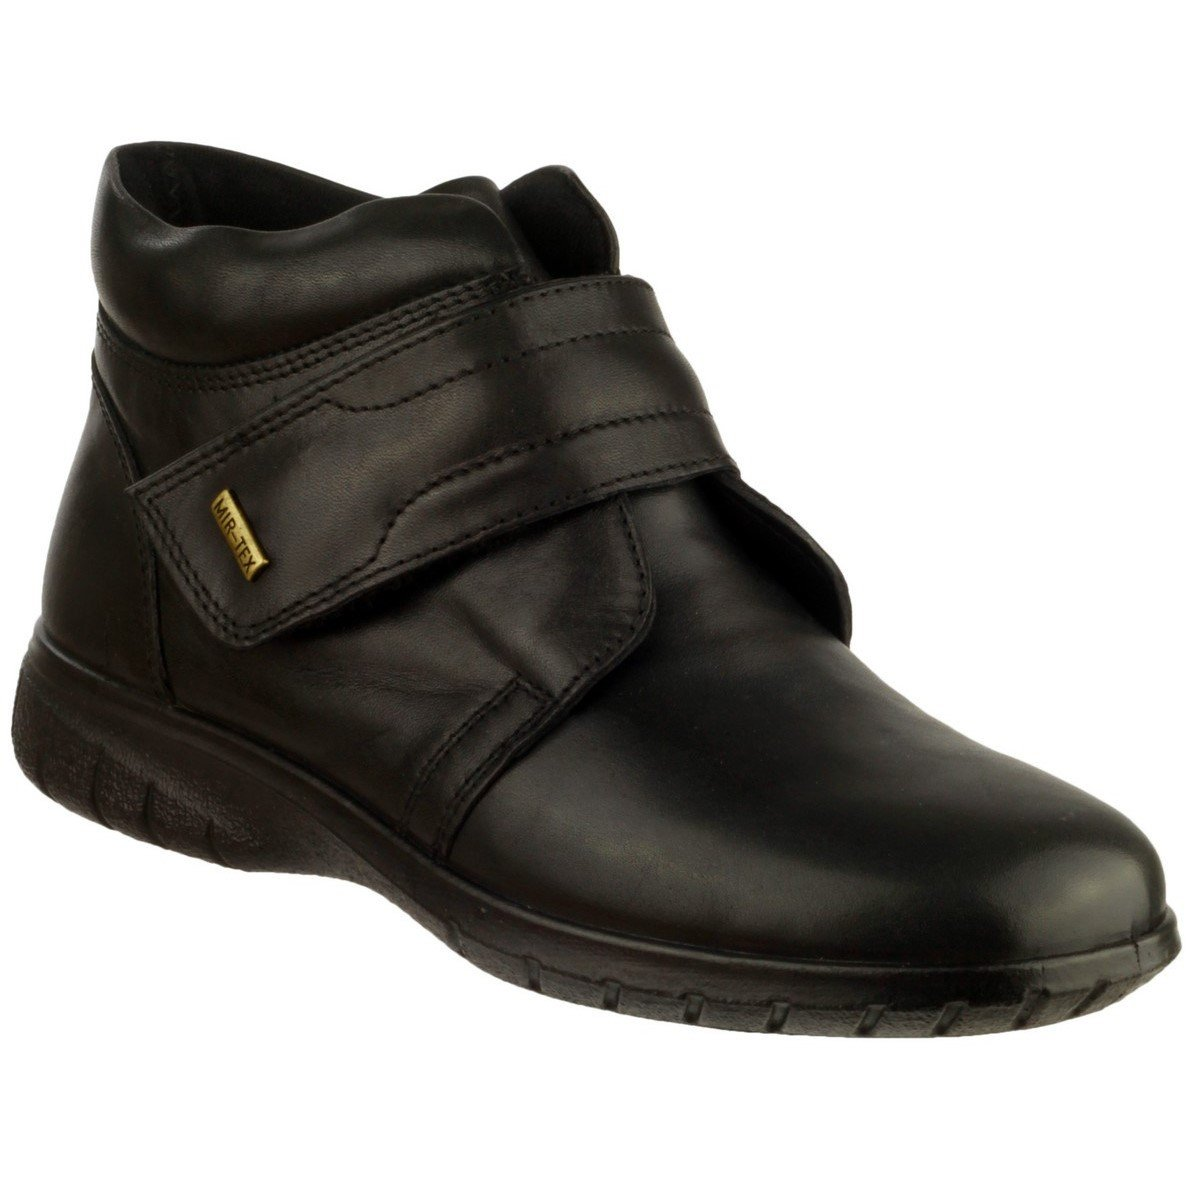 Cotswold Women's Chalford 2 Ankle Boot Various Colours 32977 - Black 5